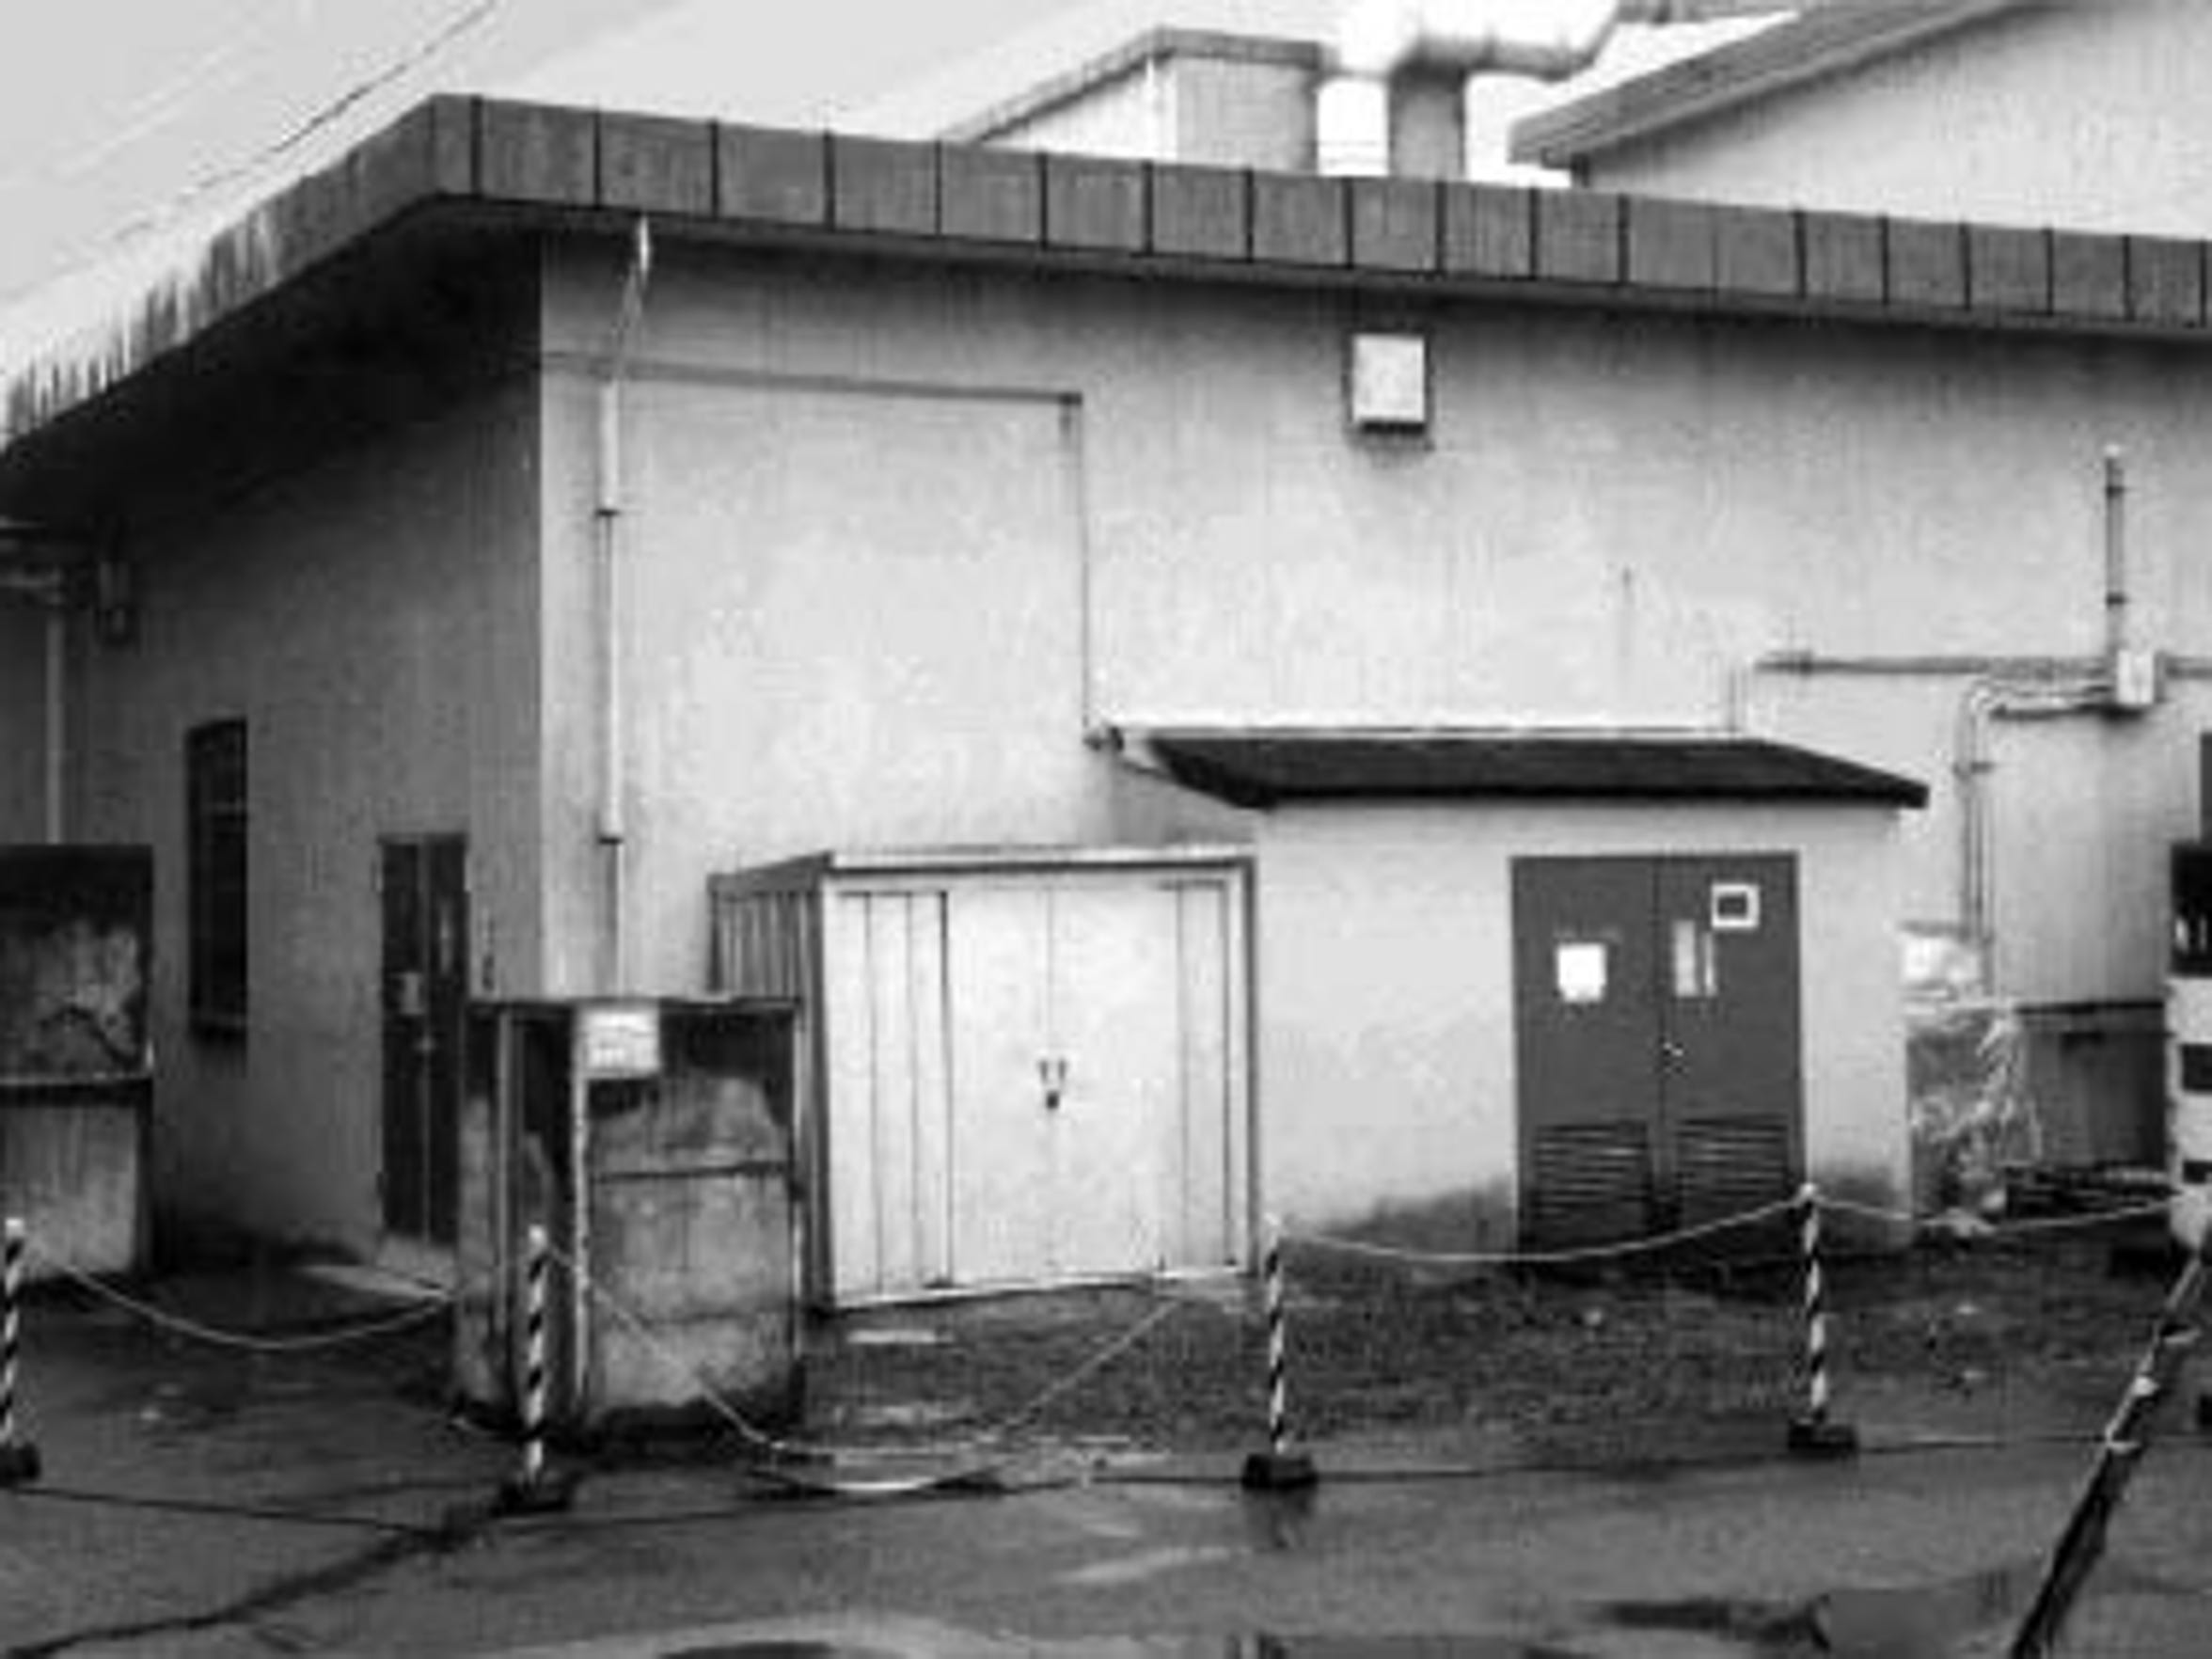 Two workers died in an accidental chain reaction at this building in Japan in 1999.